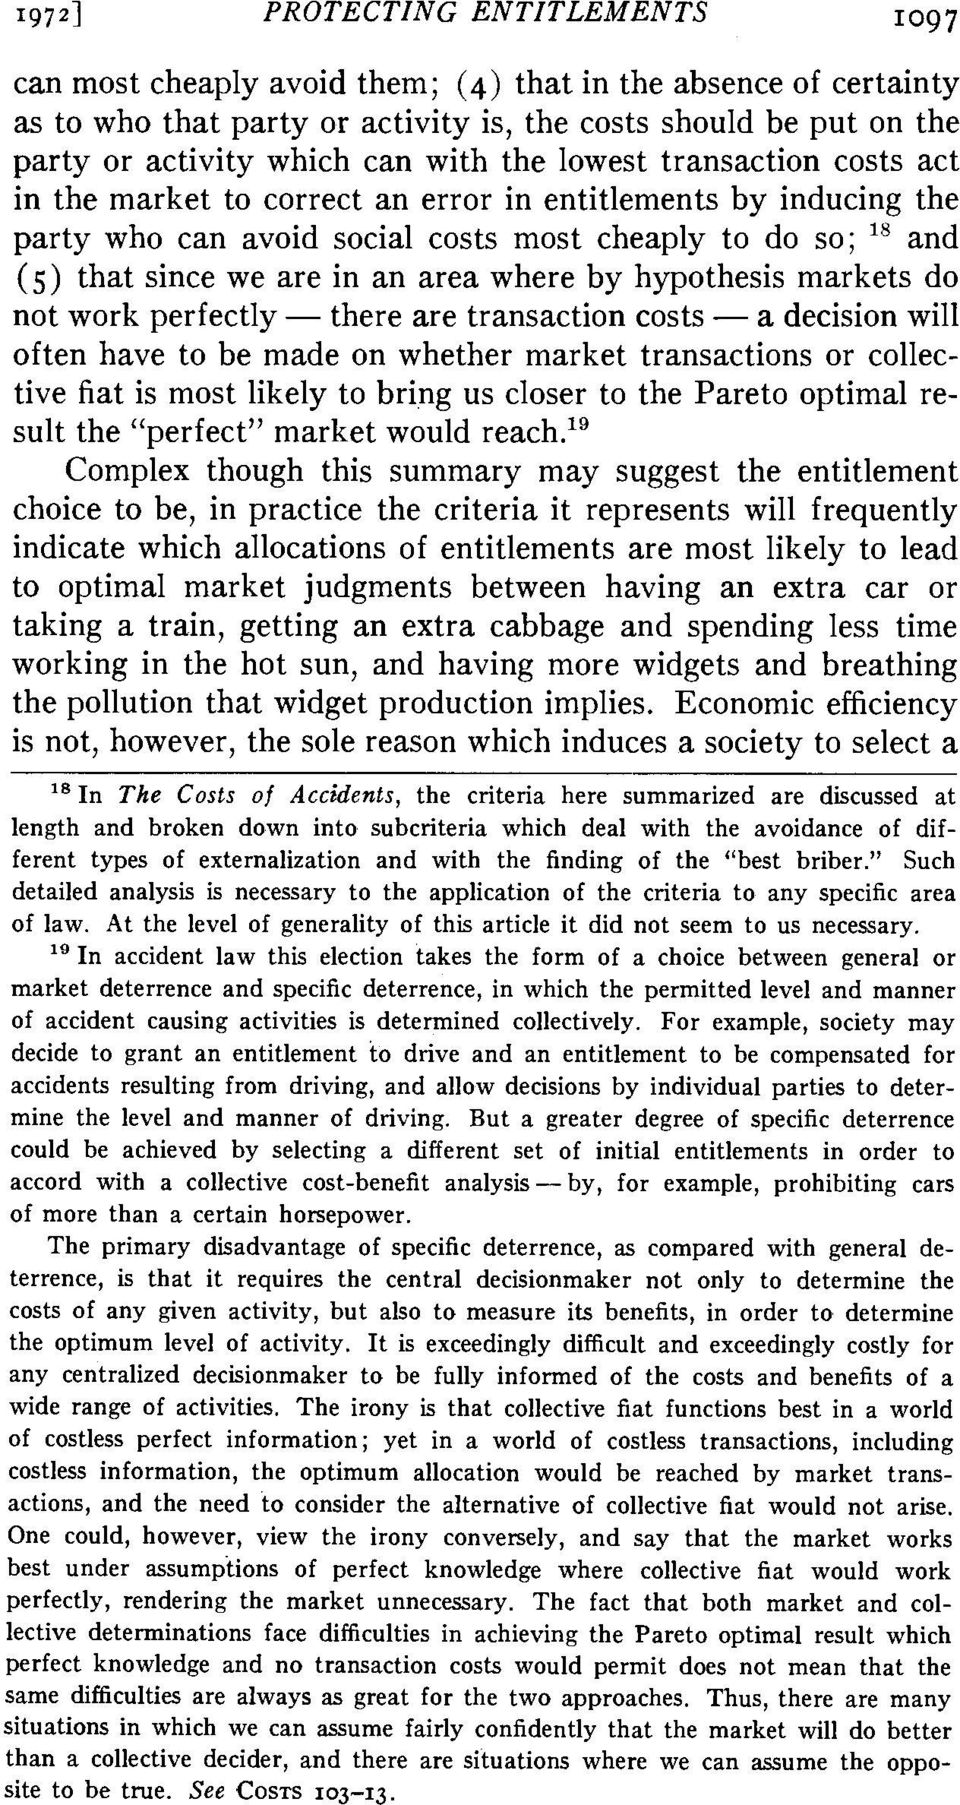 where by hypothesis markets do not work perfectly - there are transaction costs - a decision will often have to be made on whether market transactions or collective fiat is most likely to bring us